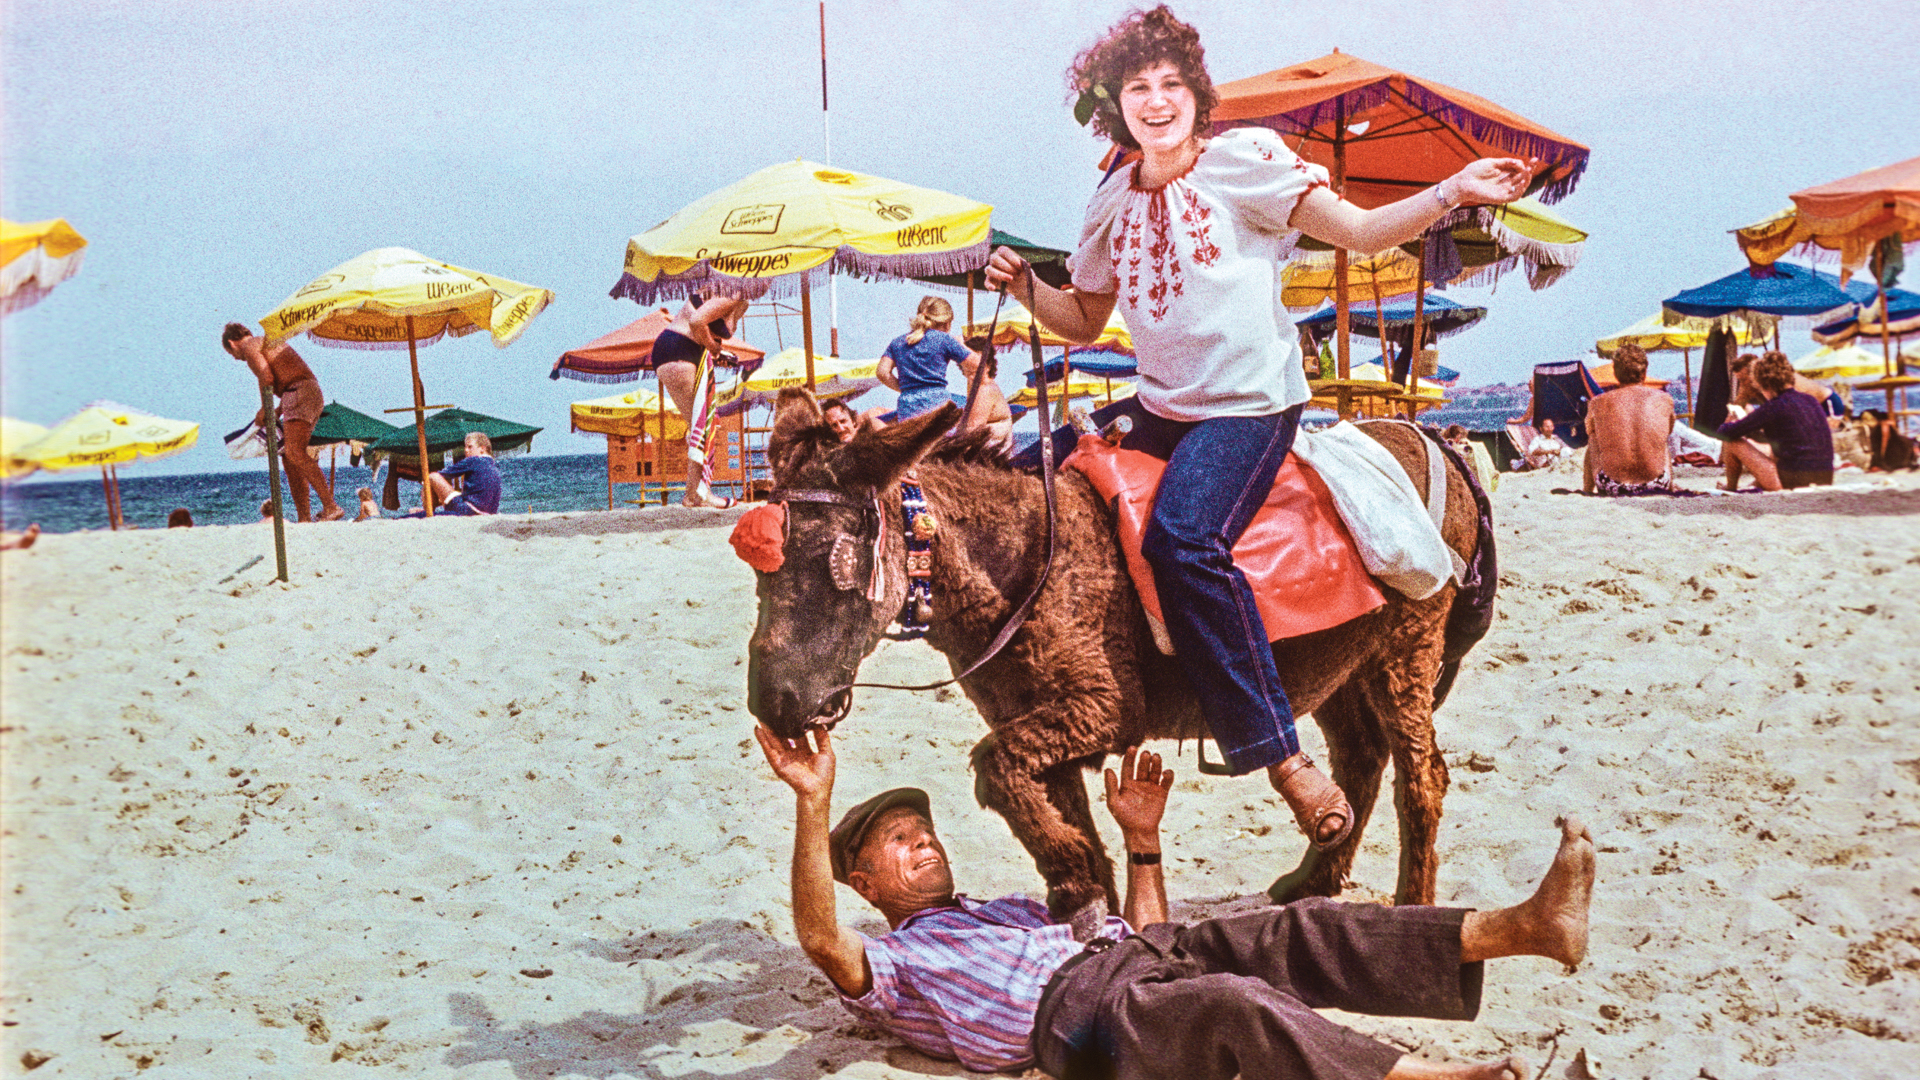 A 1970s tourist attraction: A donkey driver poses with his animal at Sunny Beach